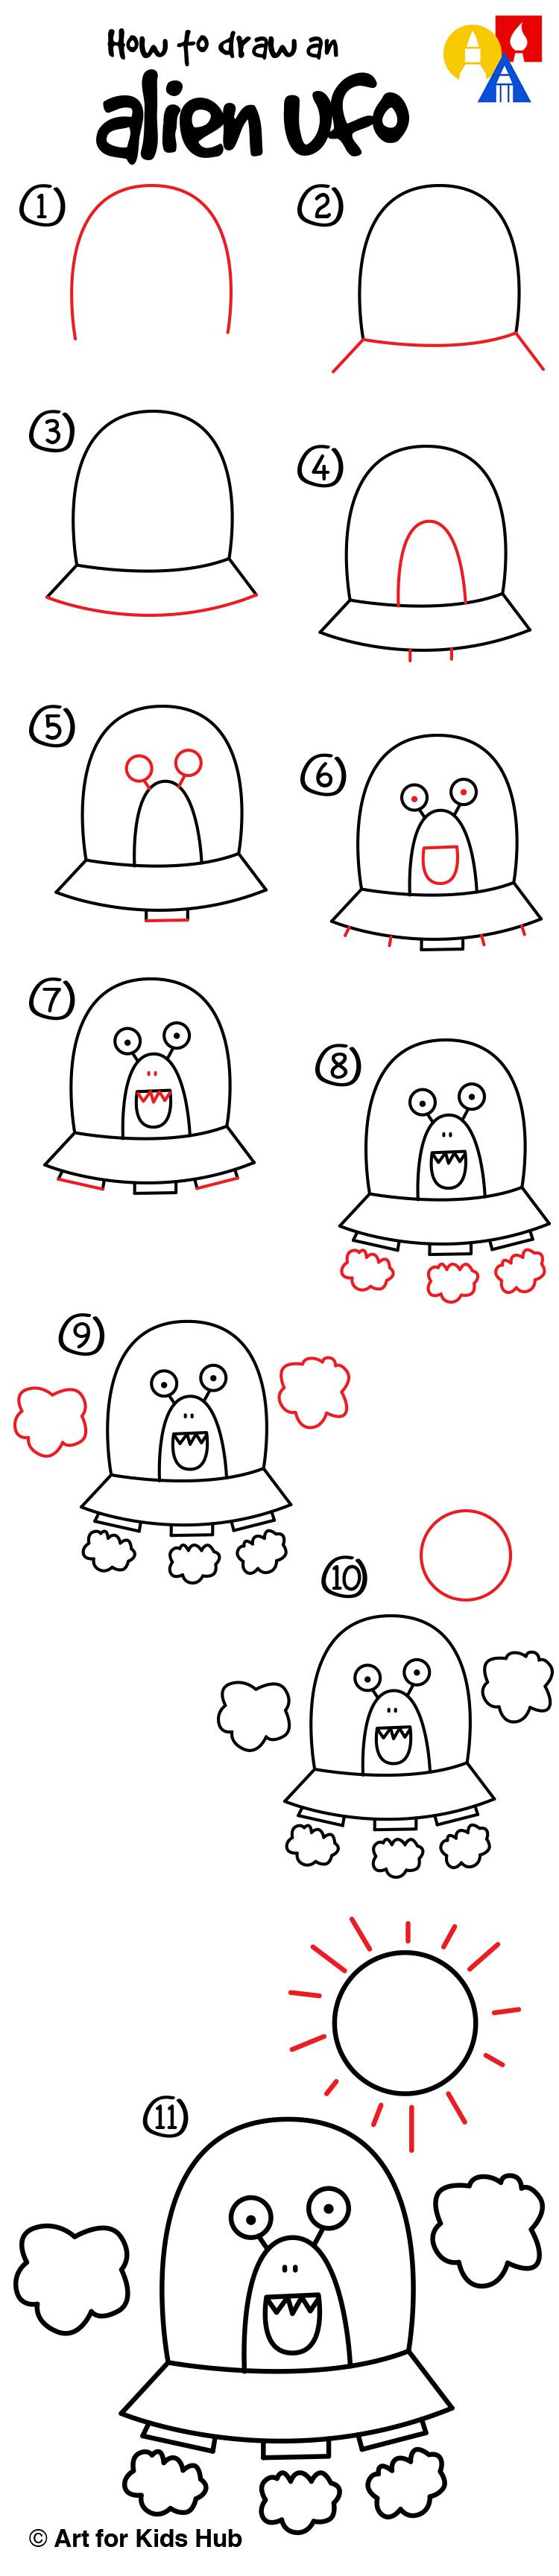 How To Draw An Alien UFO (young artists) - Art For Kids Hub ...